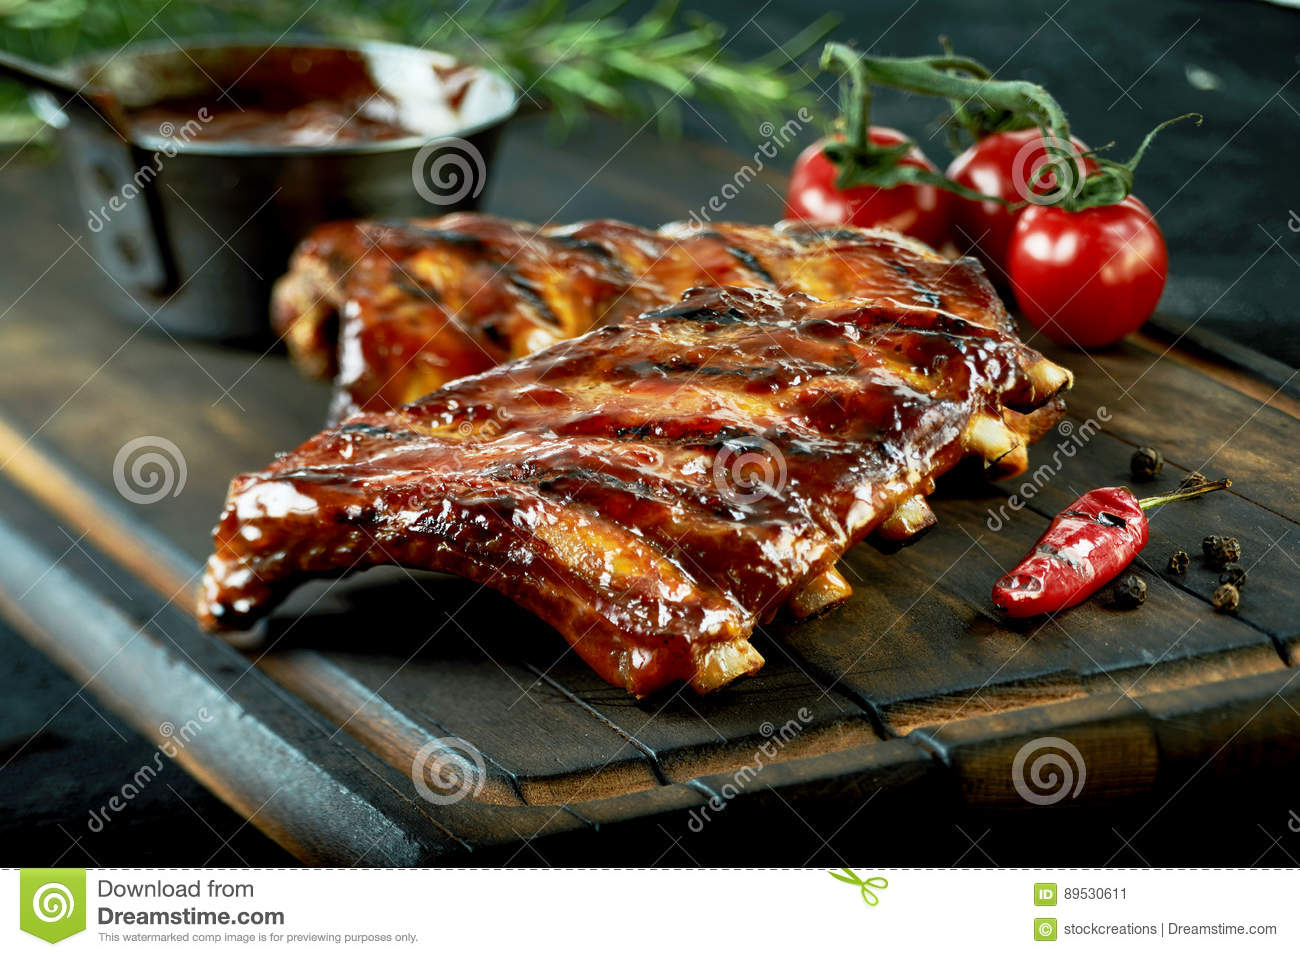 Spicy hot grilled spare ribs from a summer BBQ